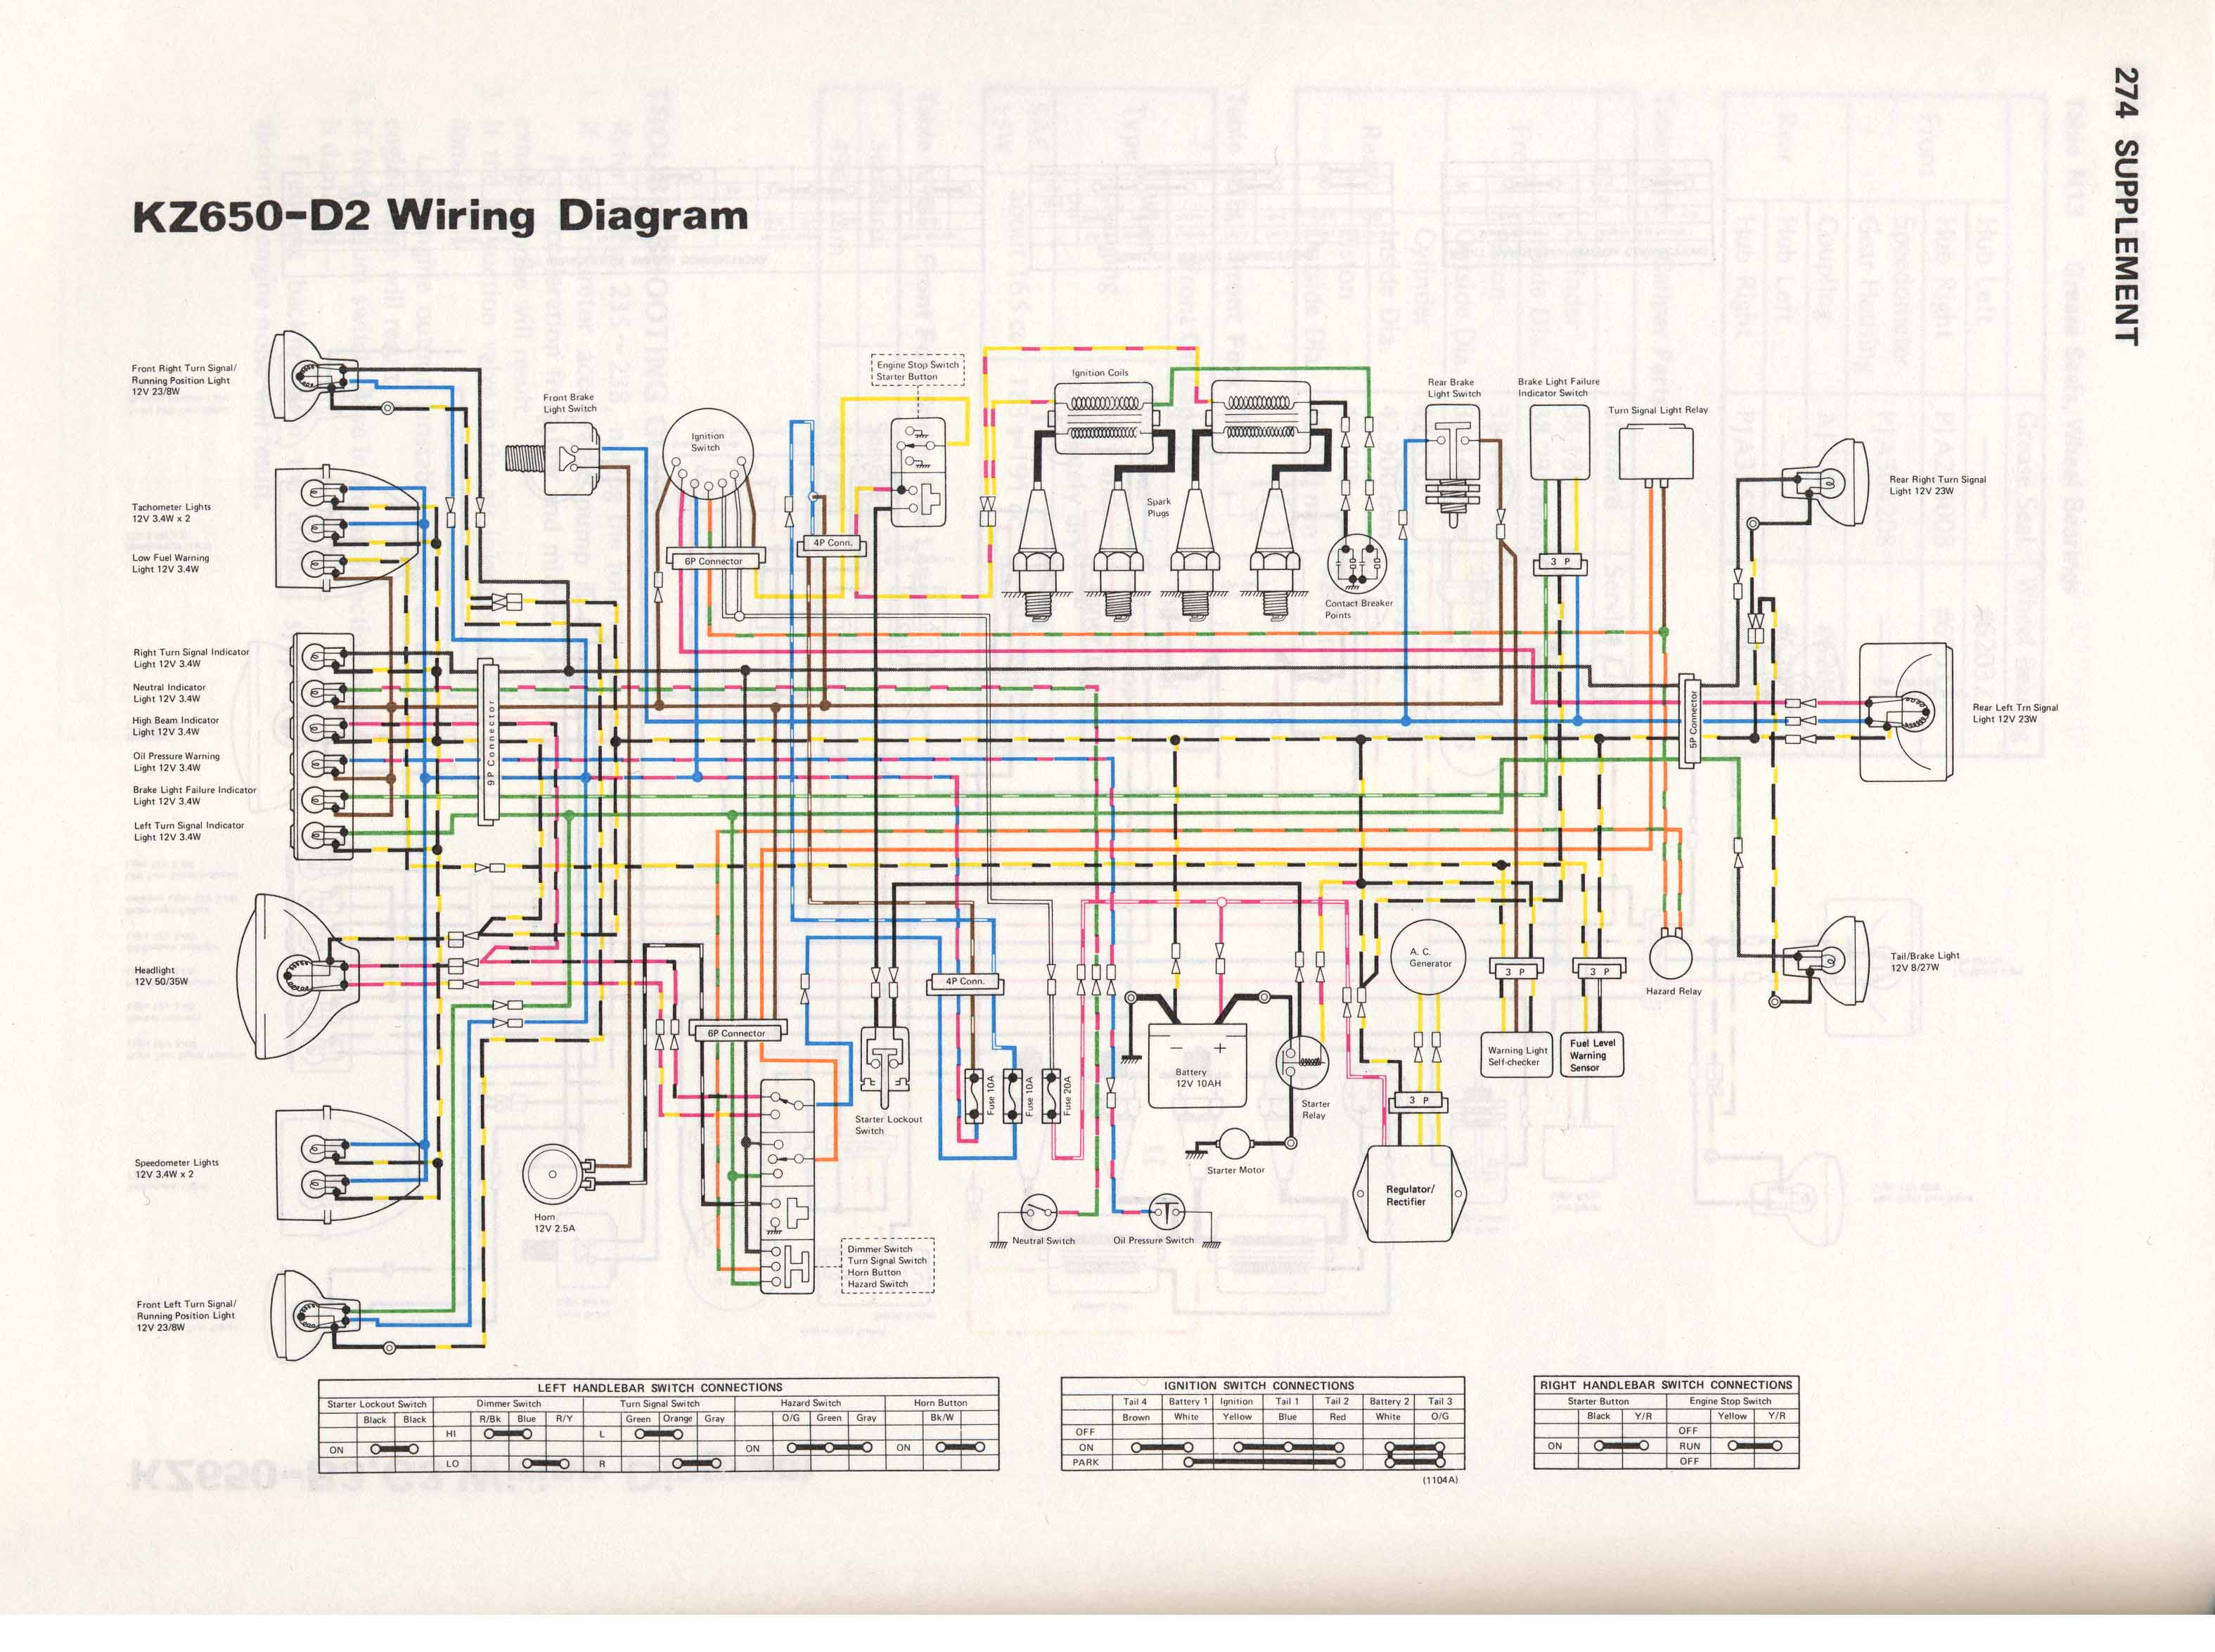 Kawasaki Zrx Wiring Diagram Great Design Of 1987 300 Engine Kz650 Info Diagrams Rh Klf 1200